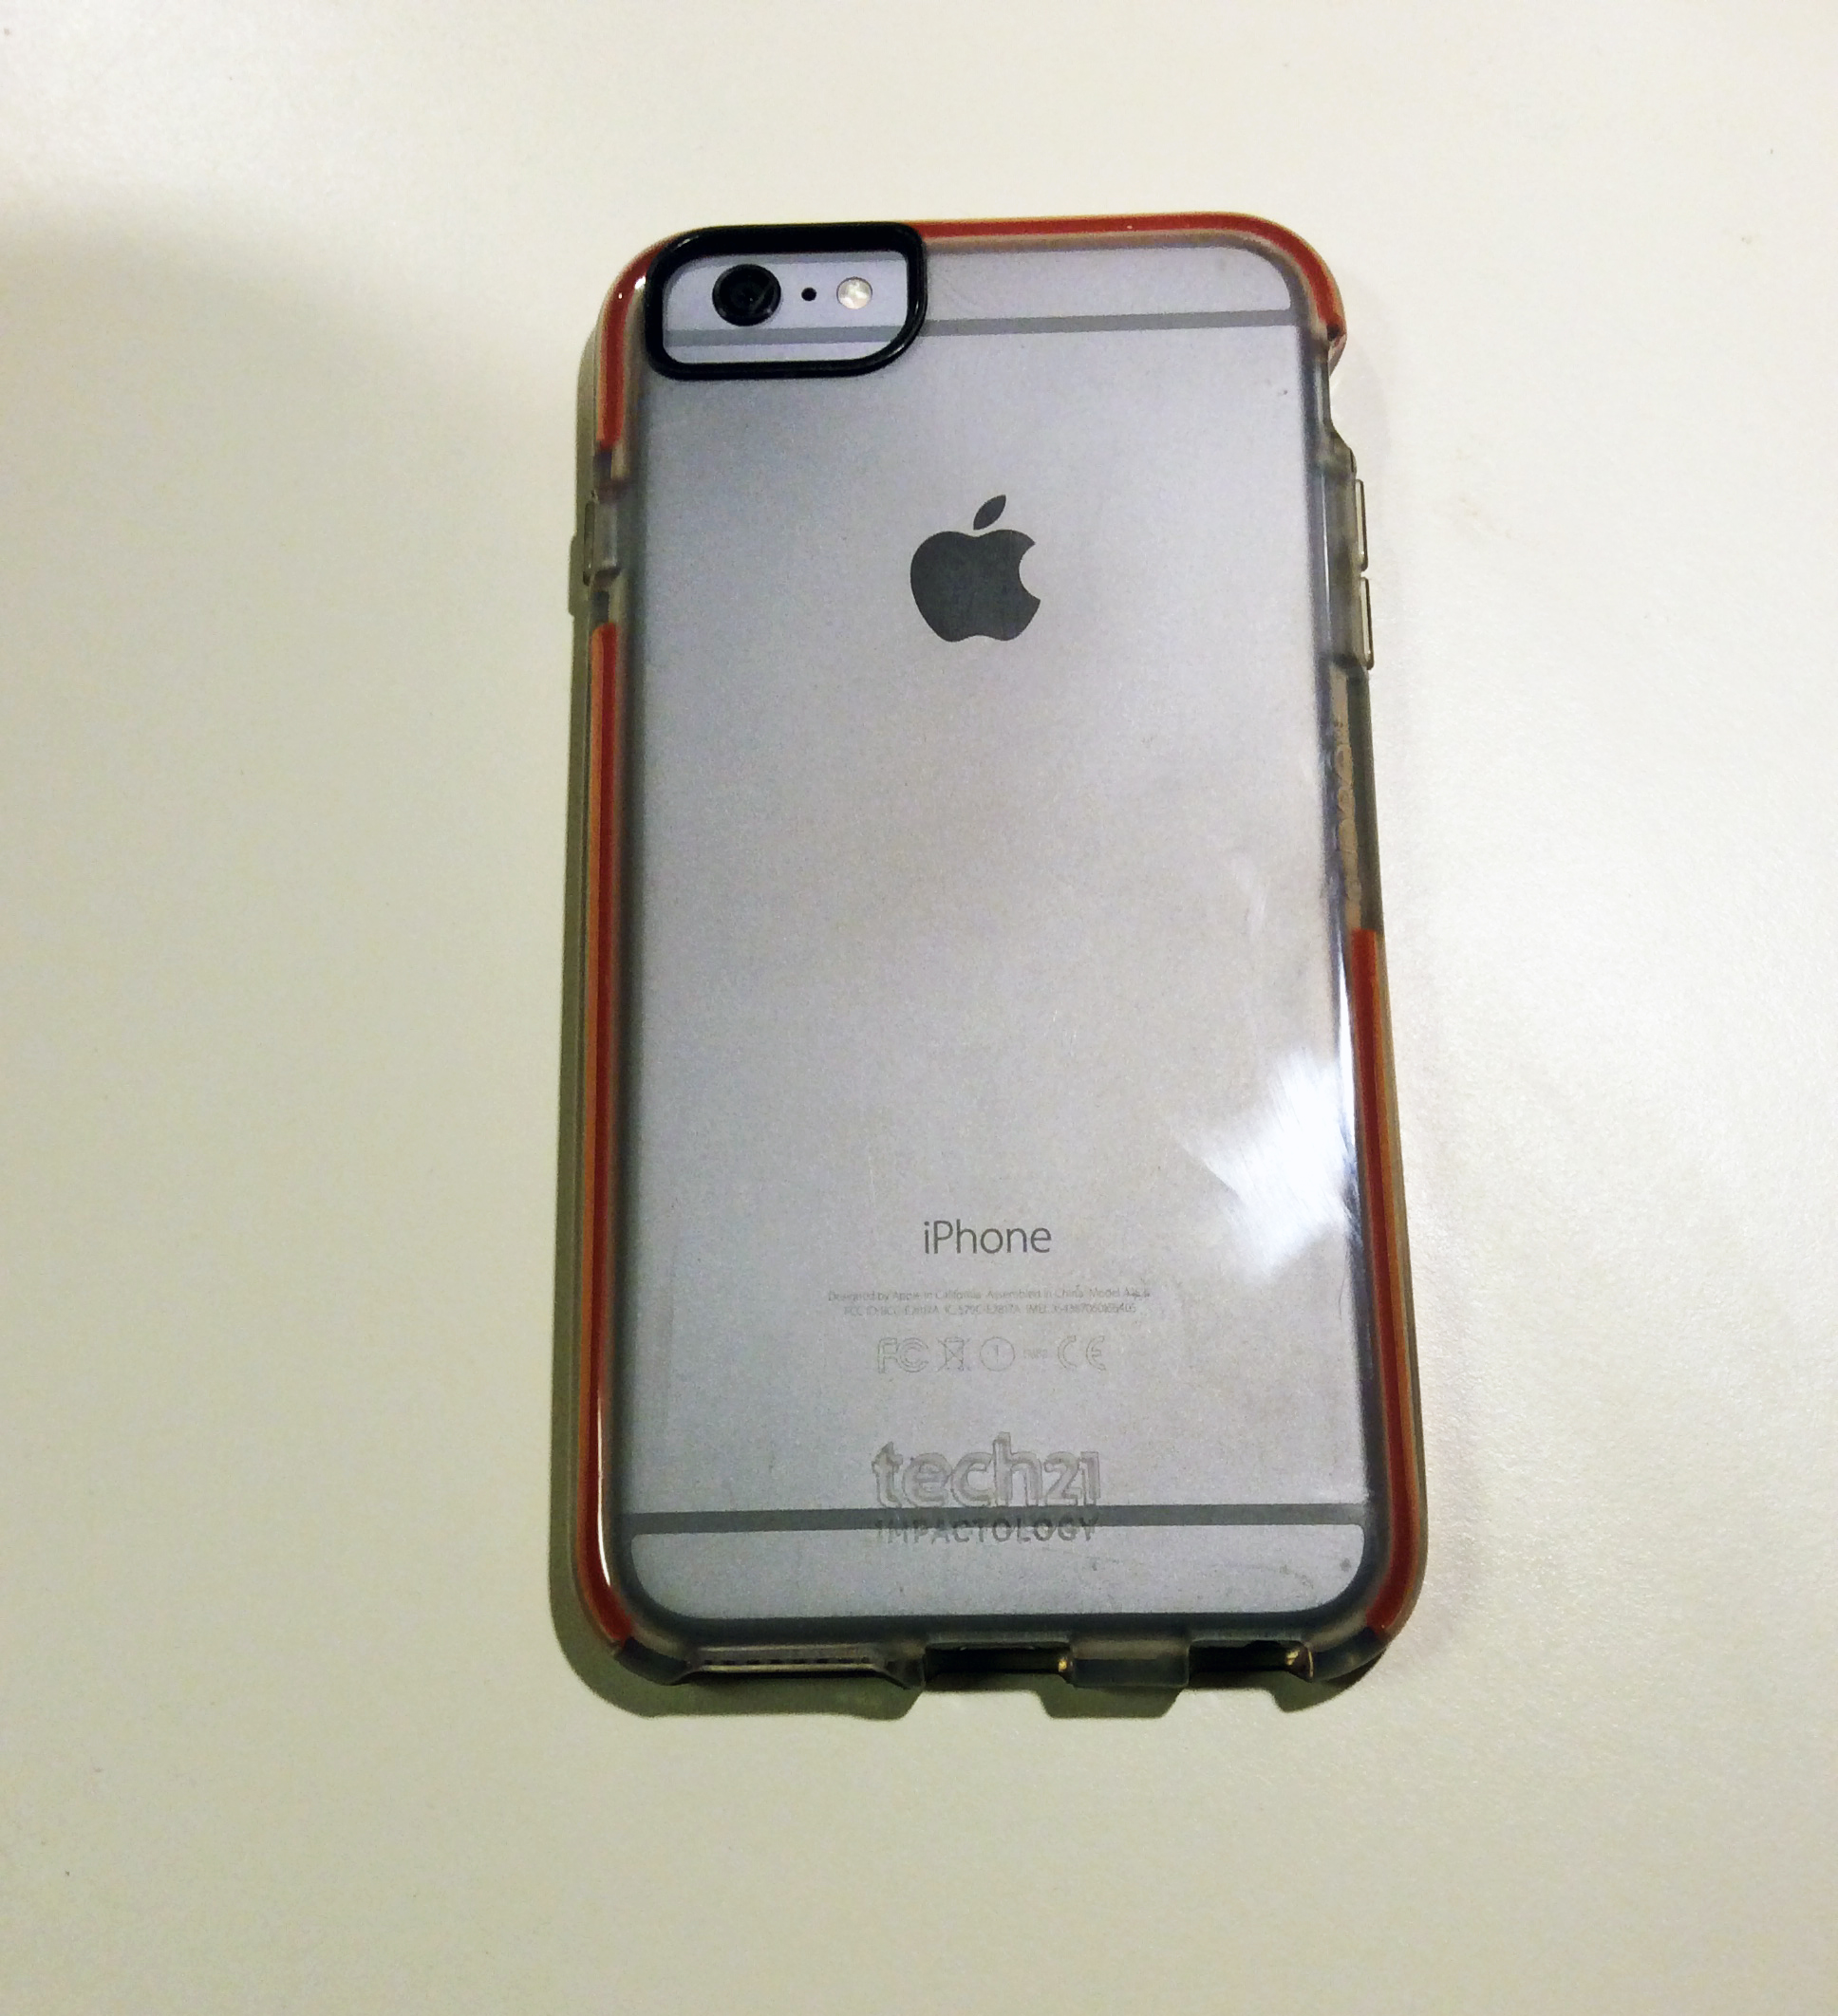 reputable site 2072e ec85f Review: Tech21's Classic Shell Case protects the iPhone 6 Plus ...